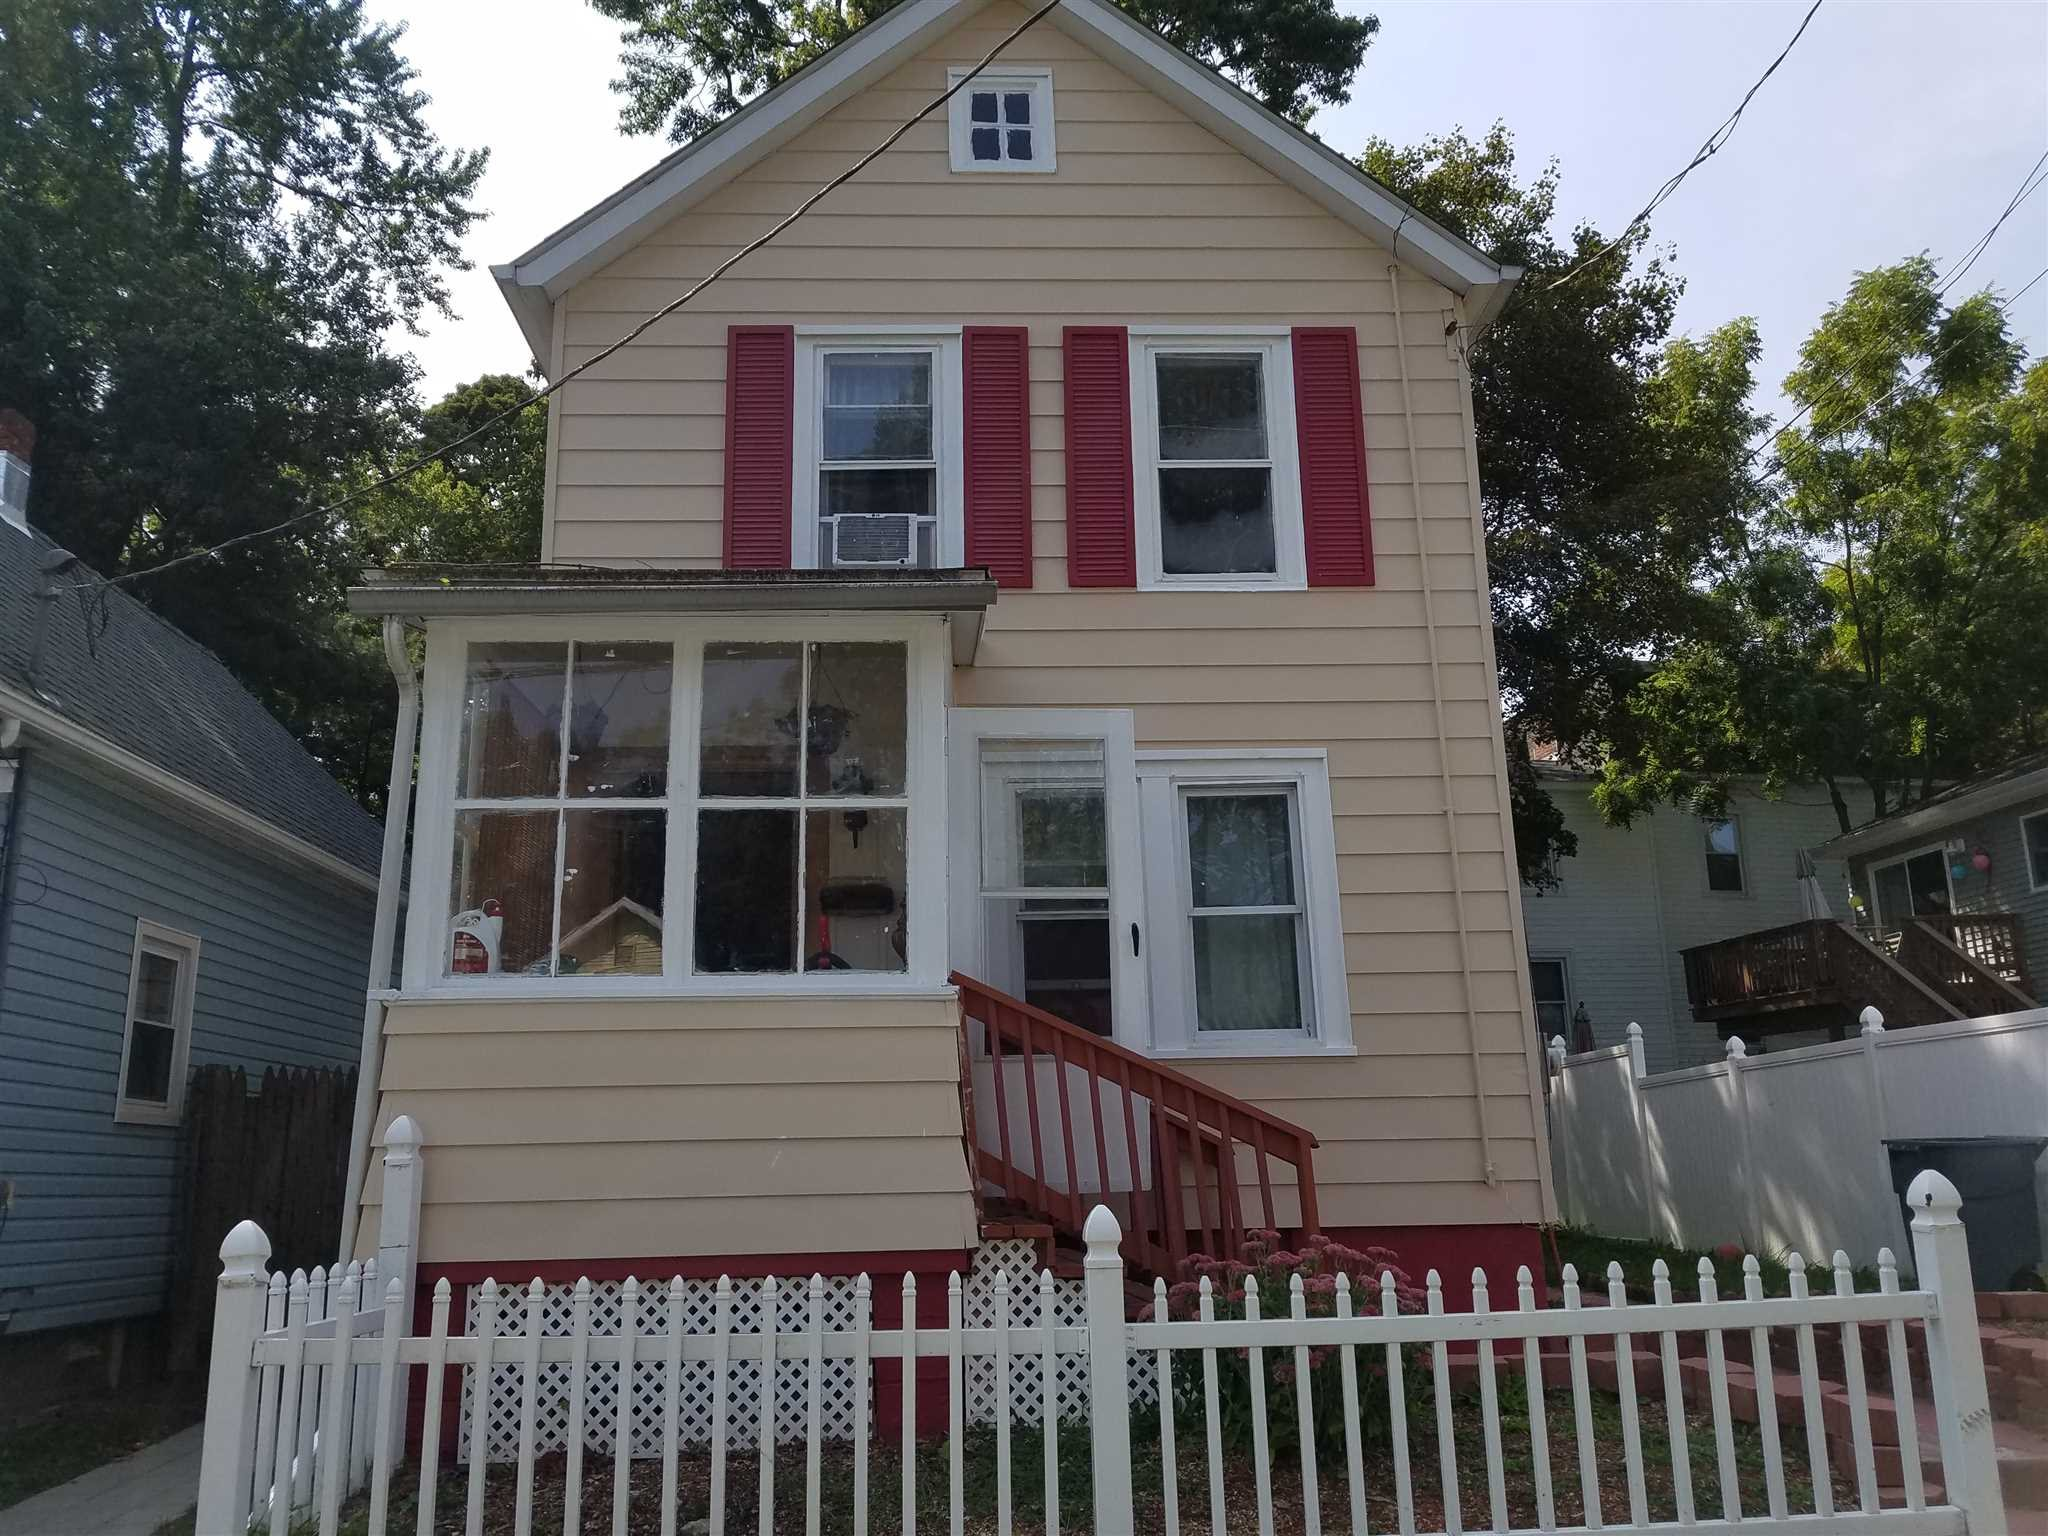 2 GLENWOOD AVE Poughkeepsie City, NY 12603 - MLS #: 365256